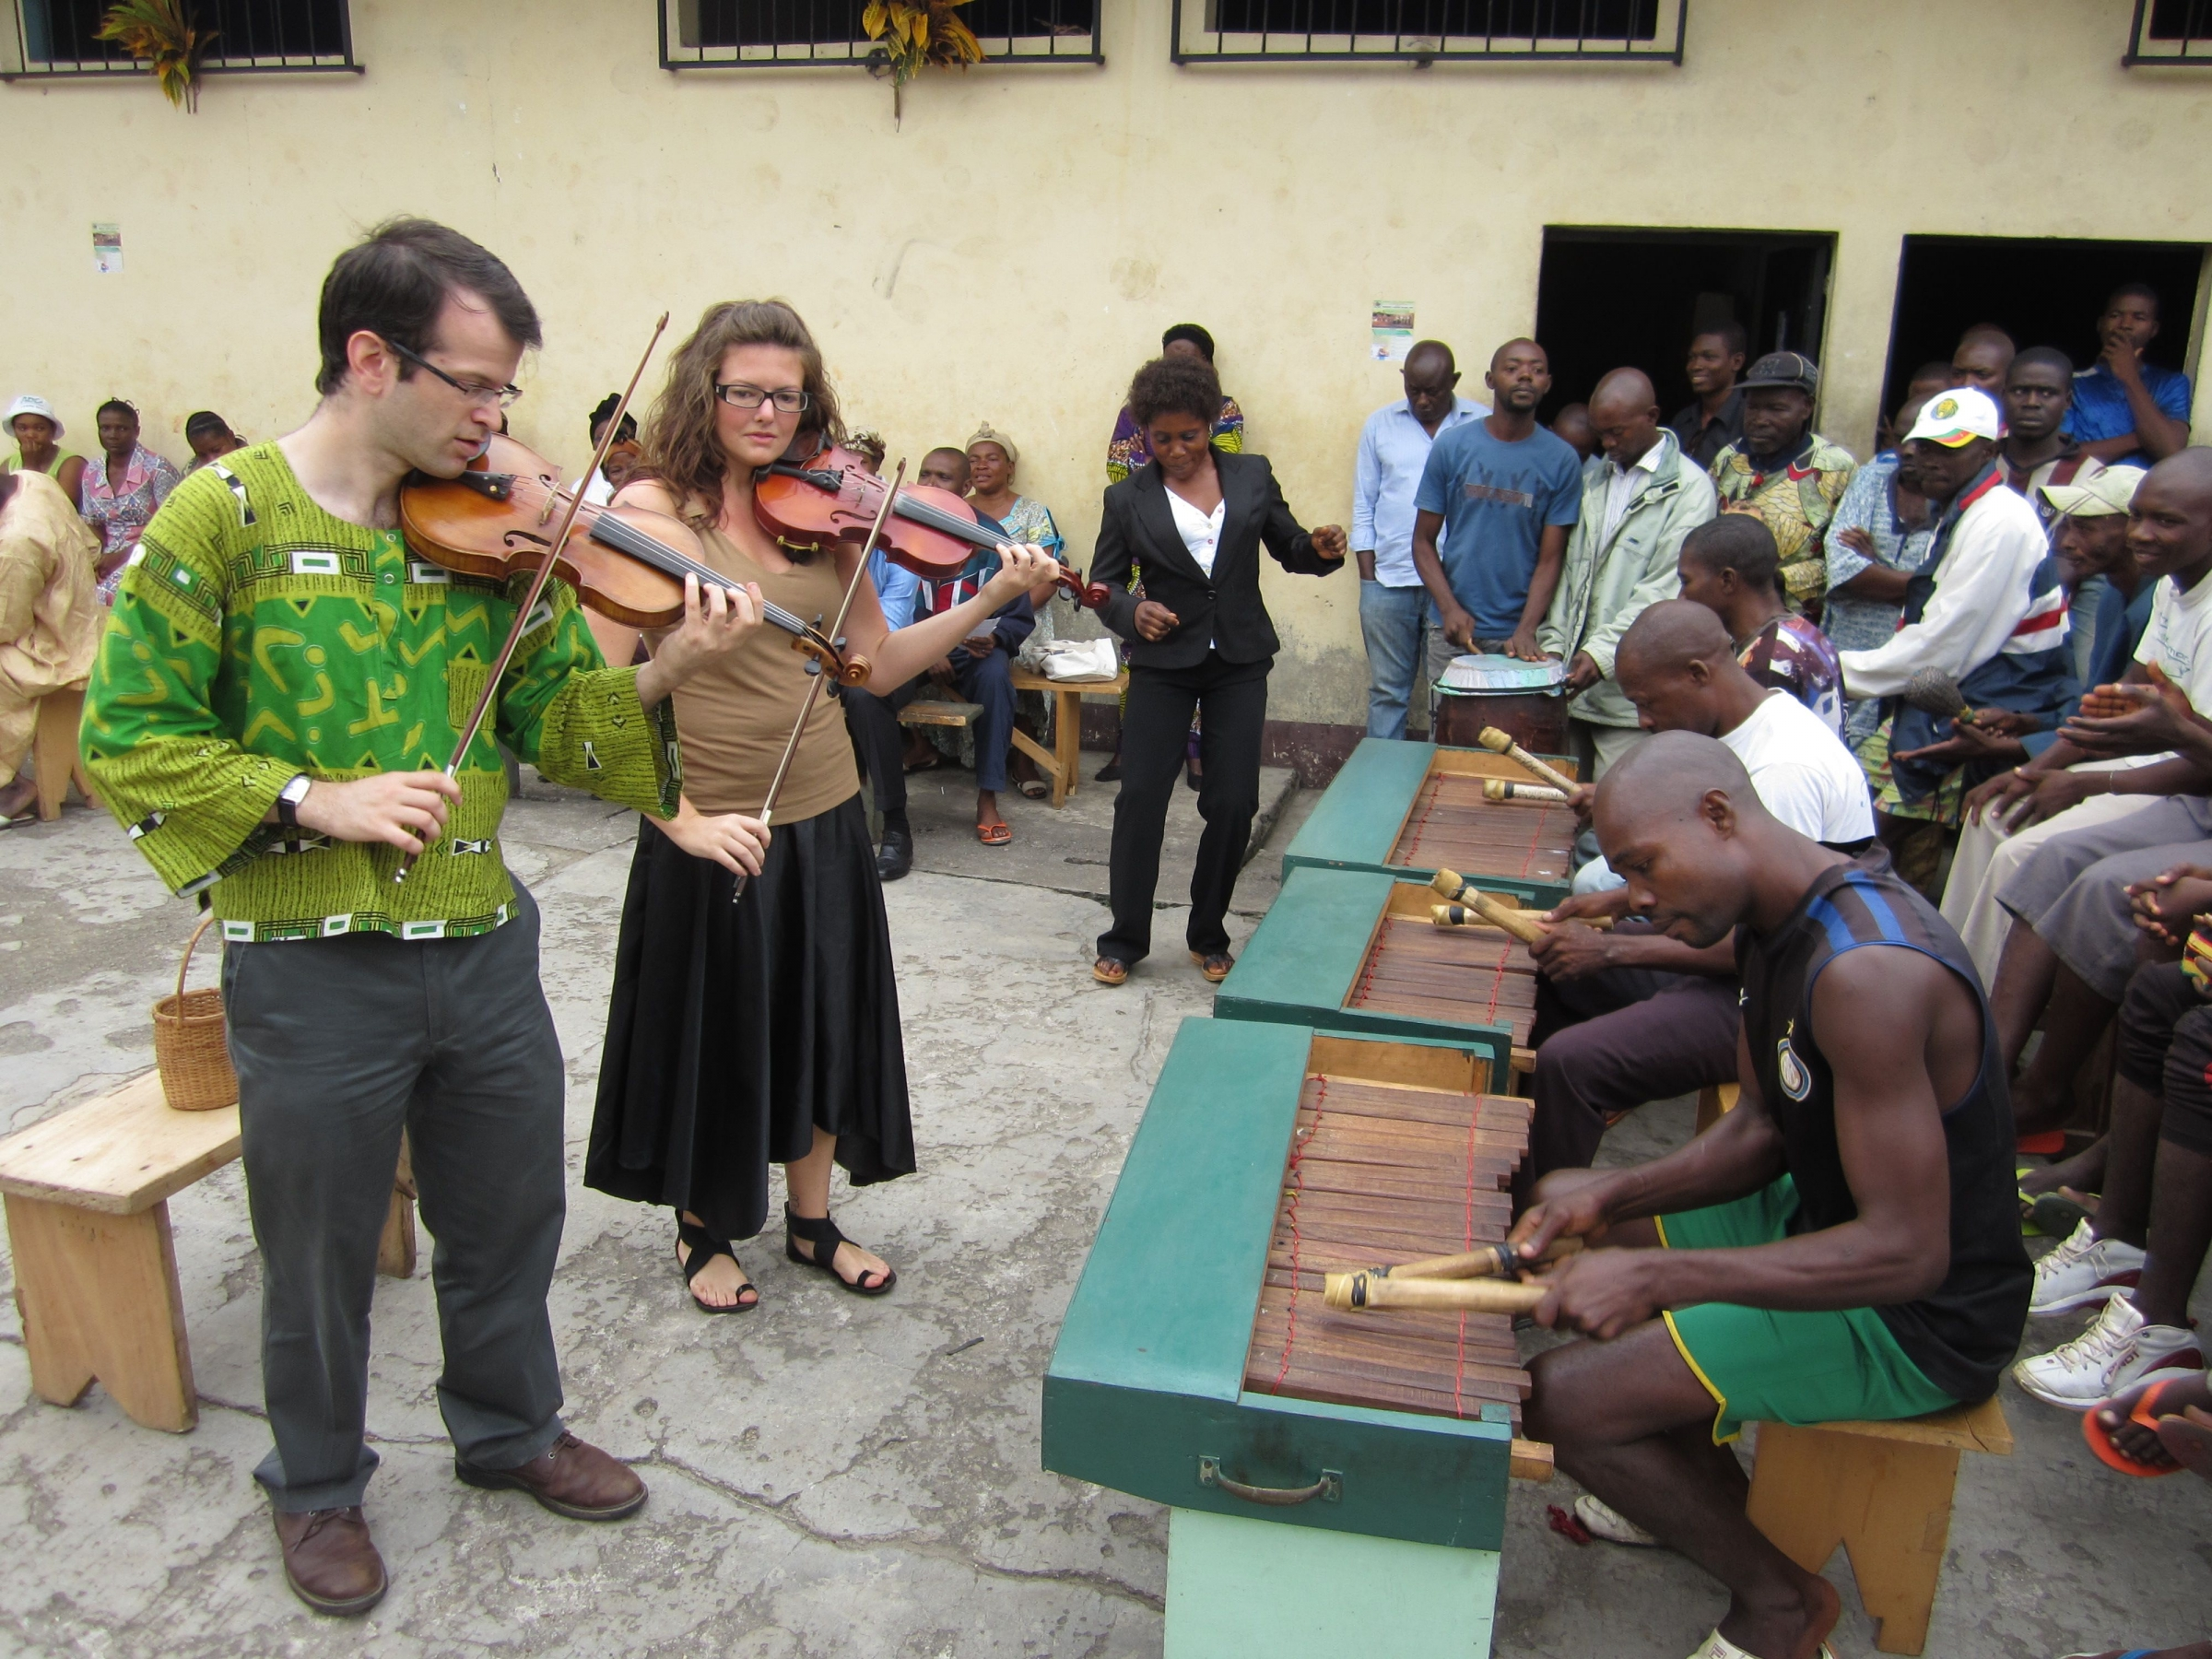 Cultures in Harmony plays with the prison marimba band at Mfou Central Prison in Cameroon, 31 July 2013. Photo reprinted courtesy of the author.